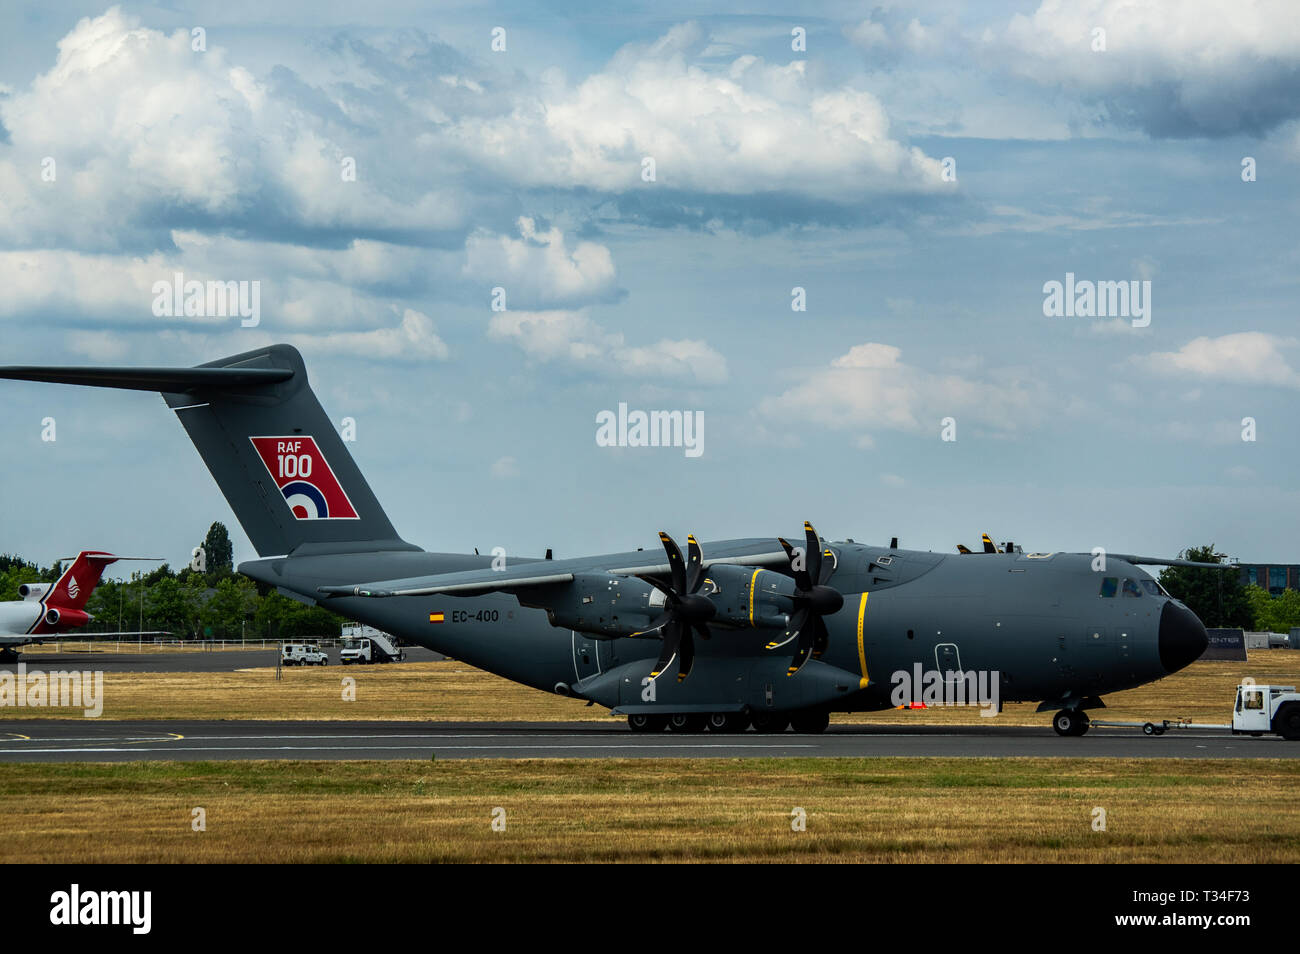 An Airbus A400M Atls being pulled by a tractor at the Farnborough air show 2018 - Stock Image